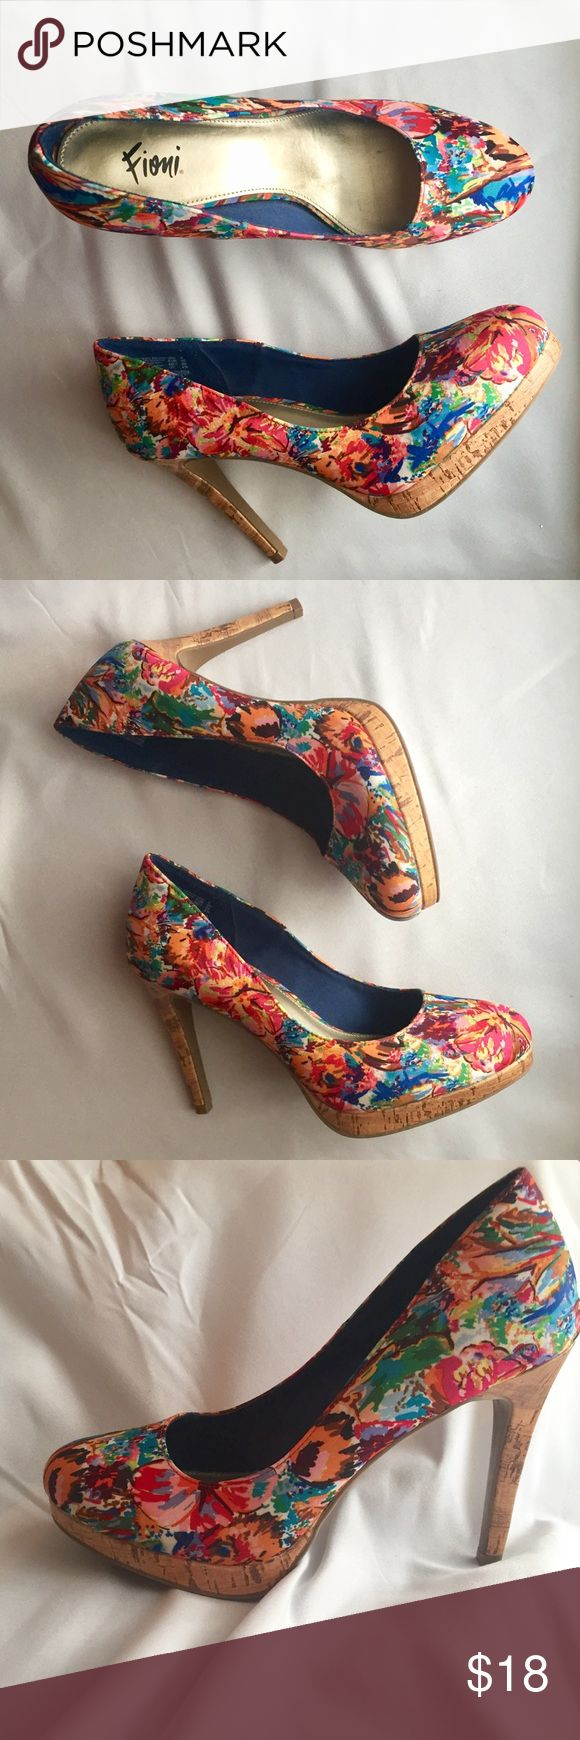 """Fioni Multicolor Pumps Floral Rainbow Heels You'll be quite the fashionista in this stylish pump from Fioni! It features a round toe, jersey lining, padded footbed, 4"""" heel with a 1/2"""" platform, and sturdy outsole.  Like new, only worn once!! FIONI Clothing Shoes Heels"""